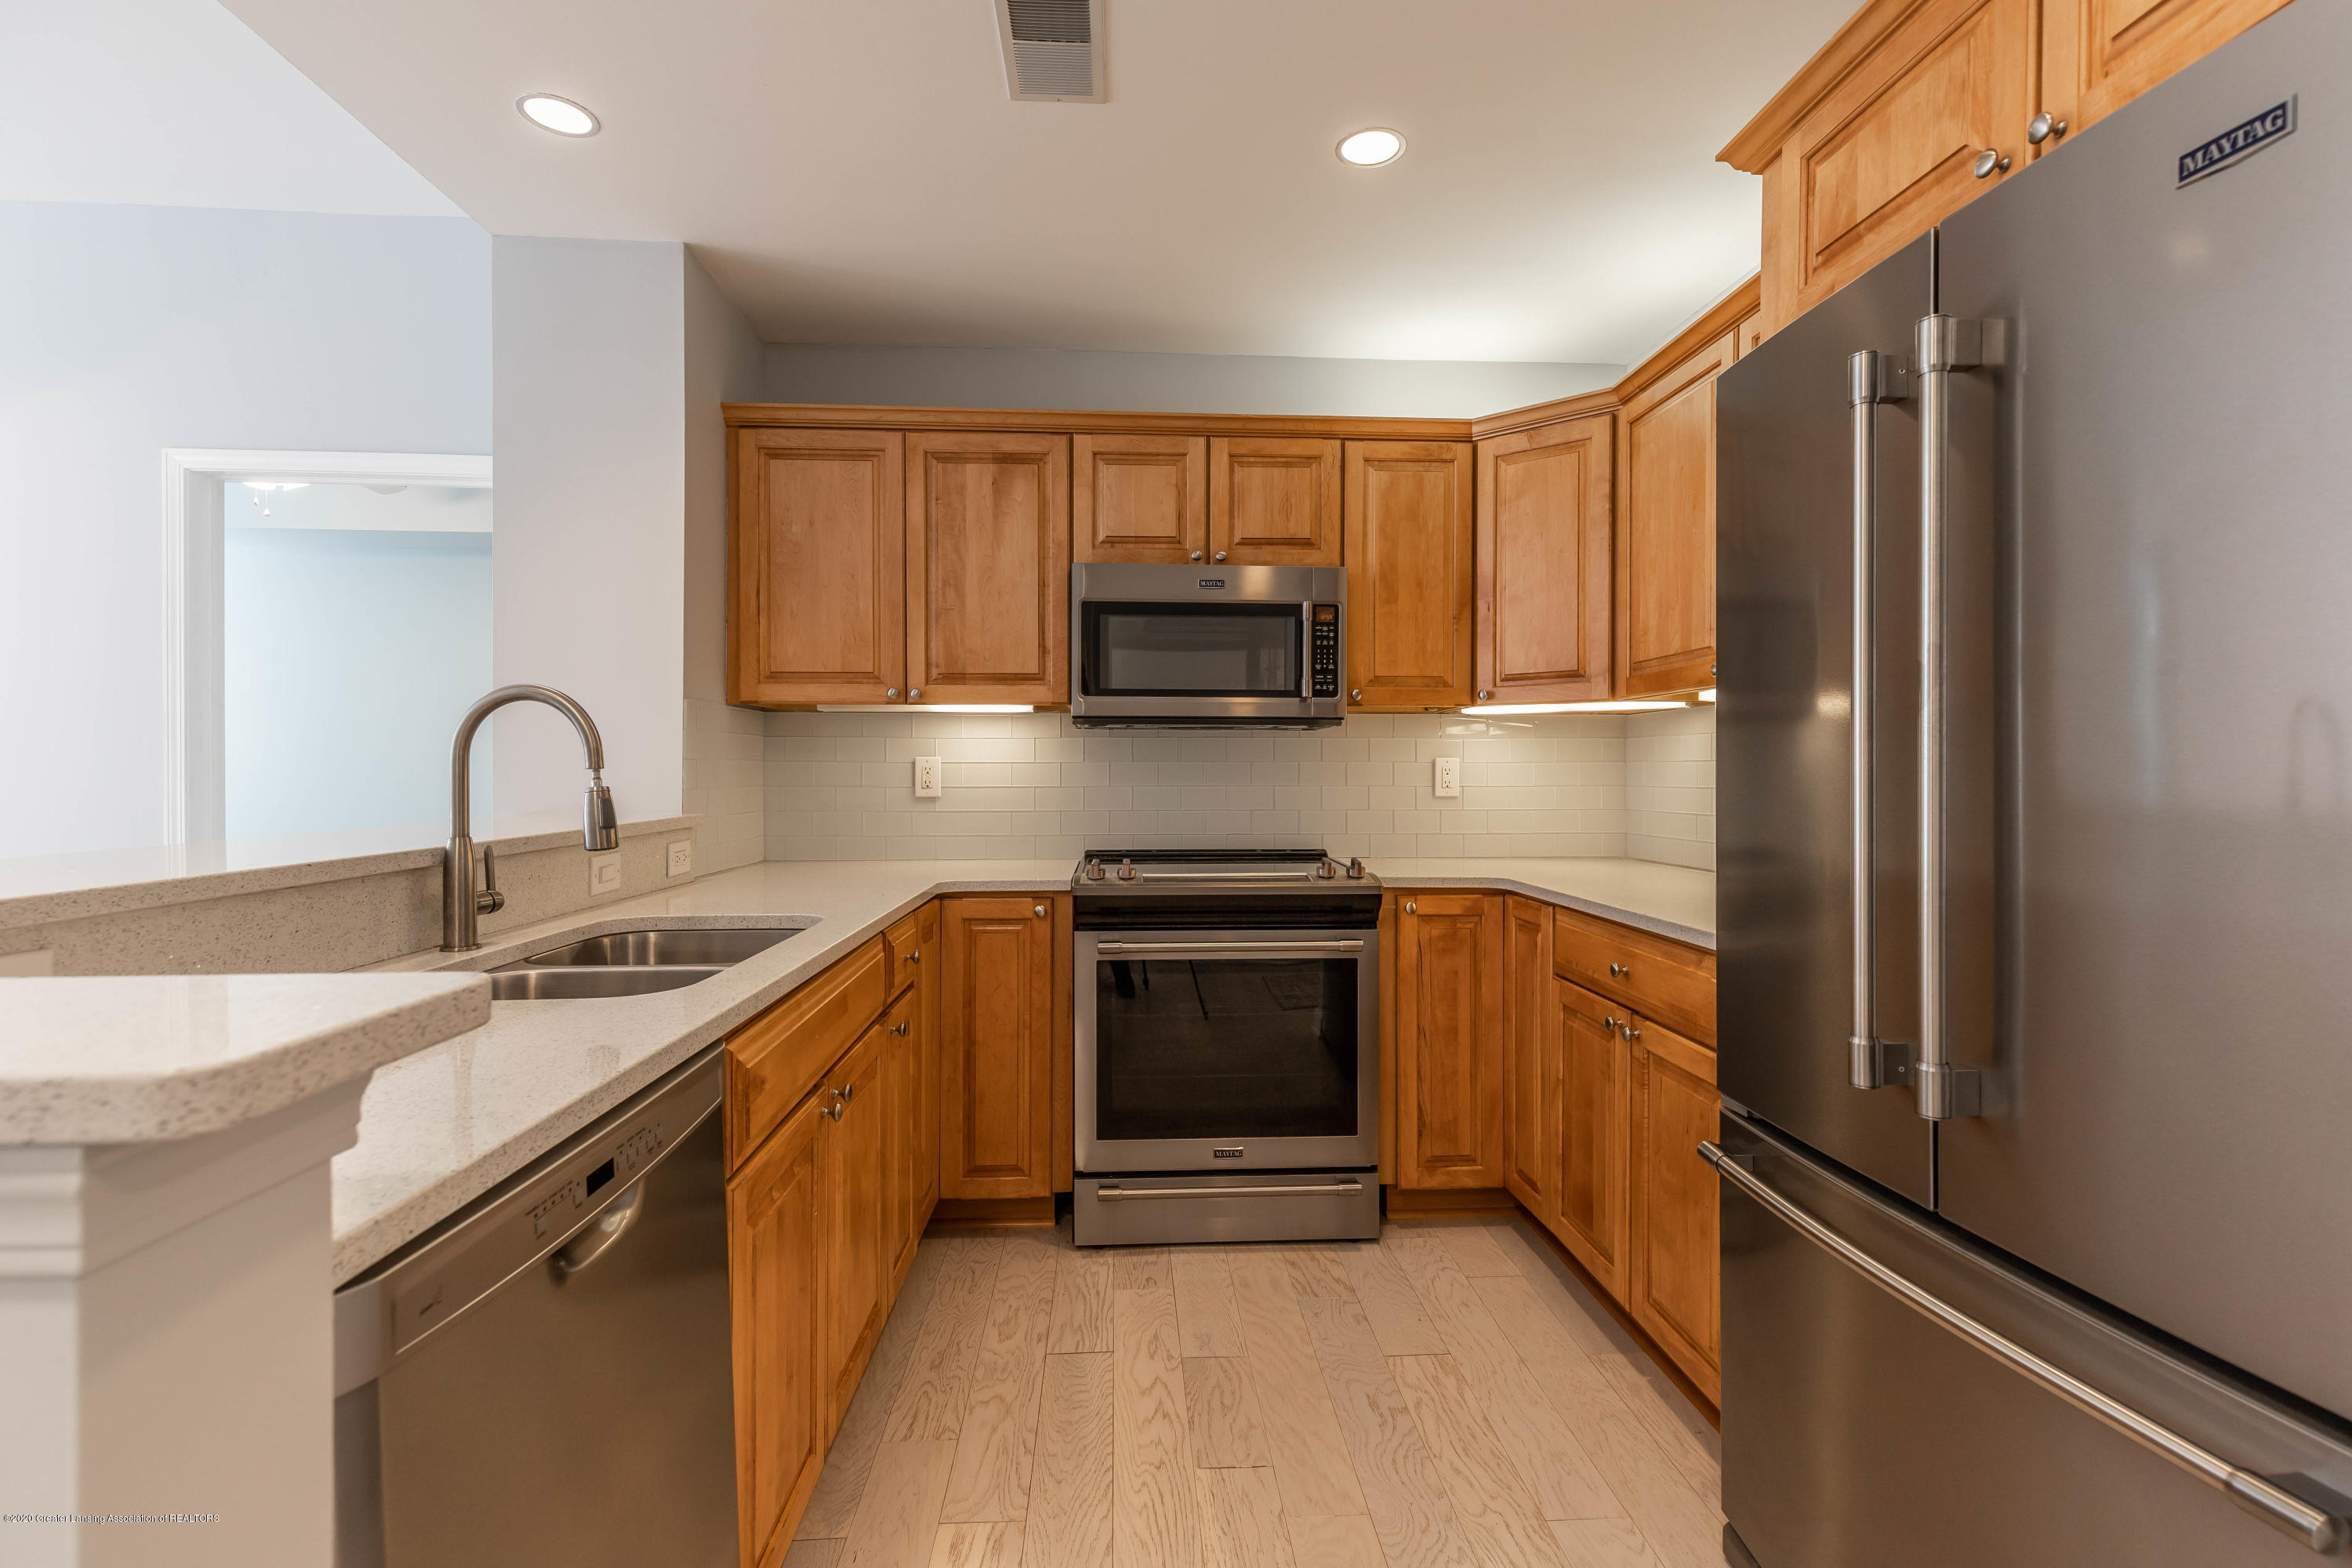 220 M. A. C. Ave Apt 313 - Kitchen - 5